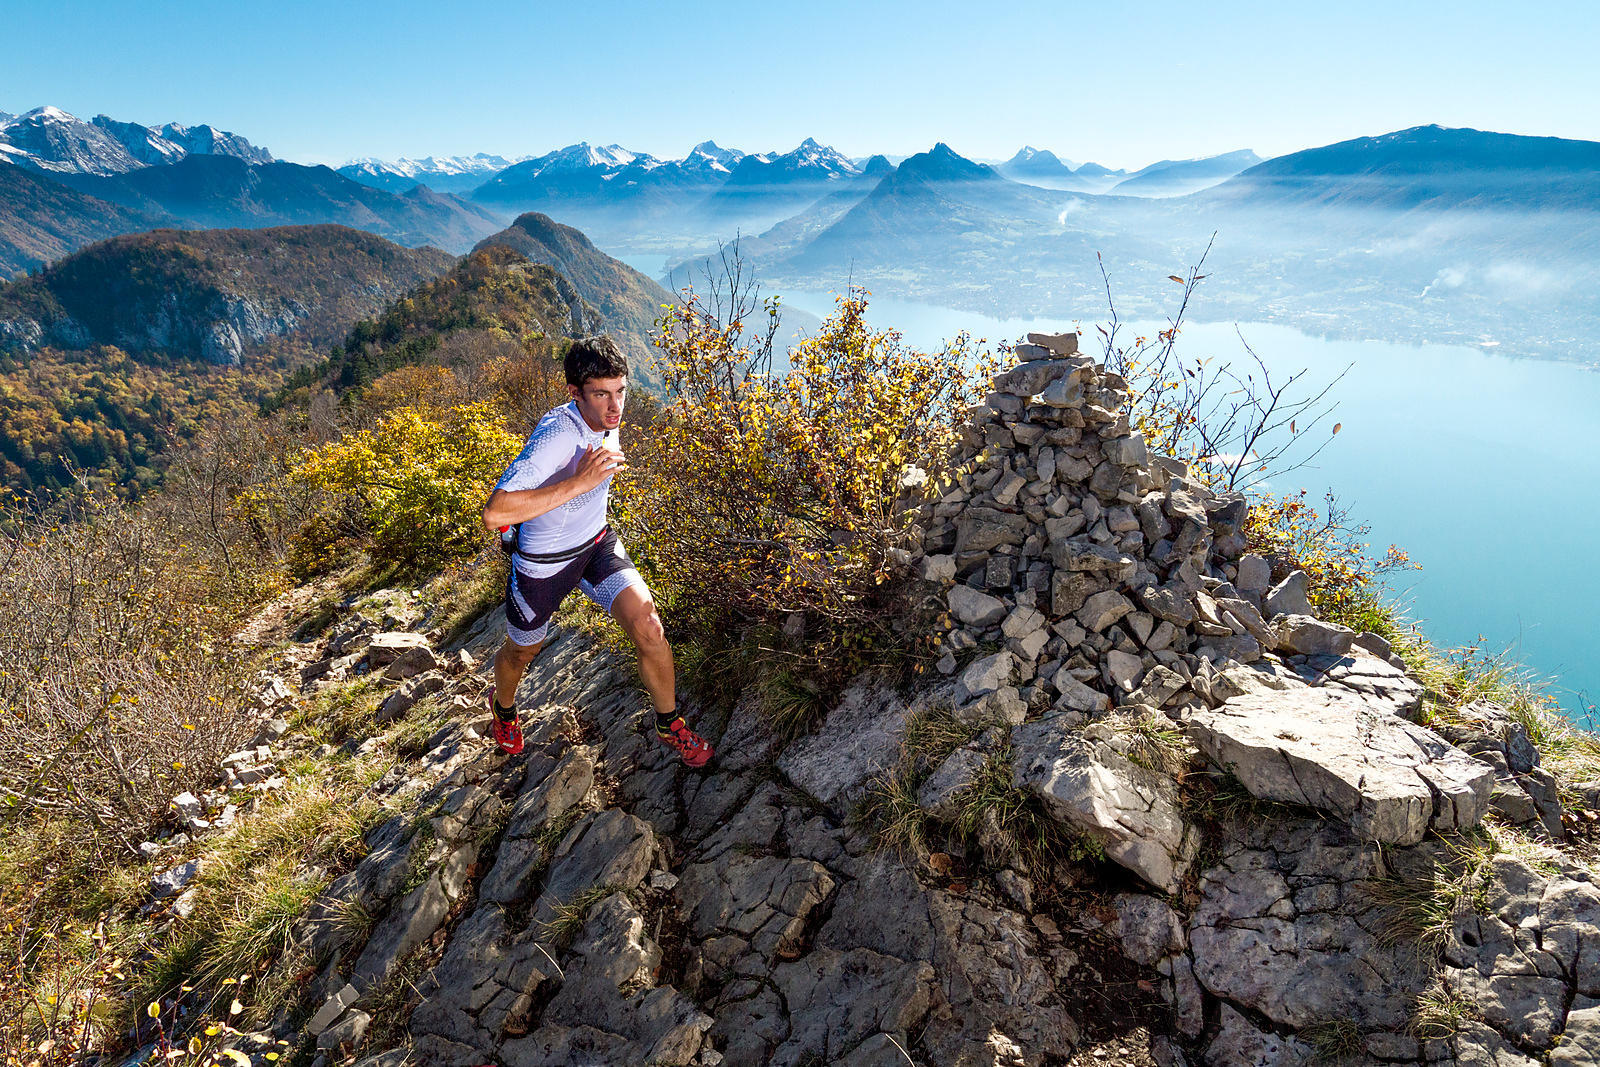 Autumn trail running with Kilian Jornet